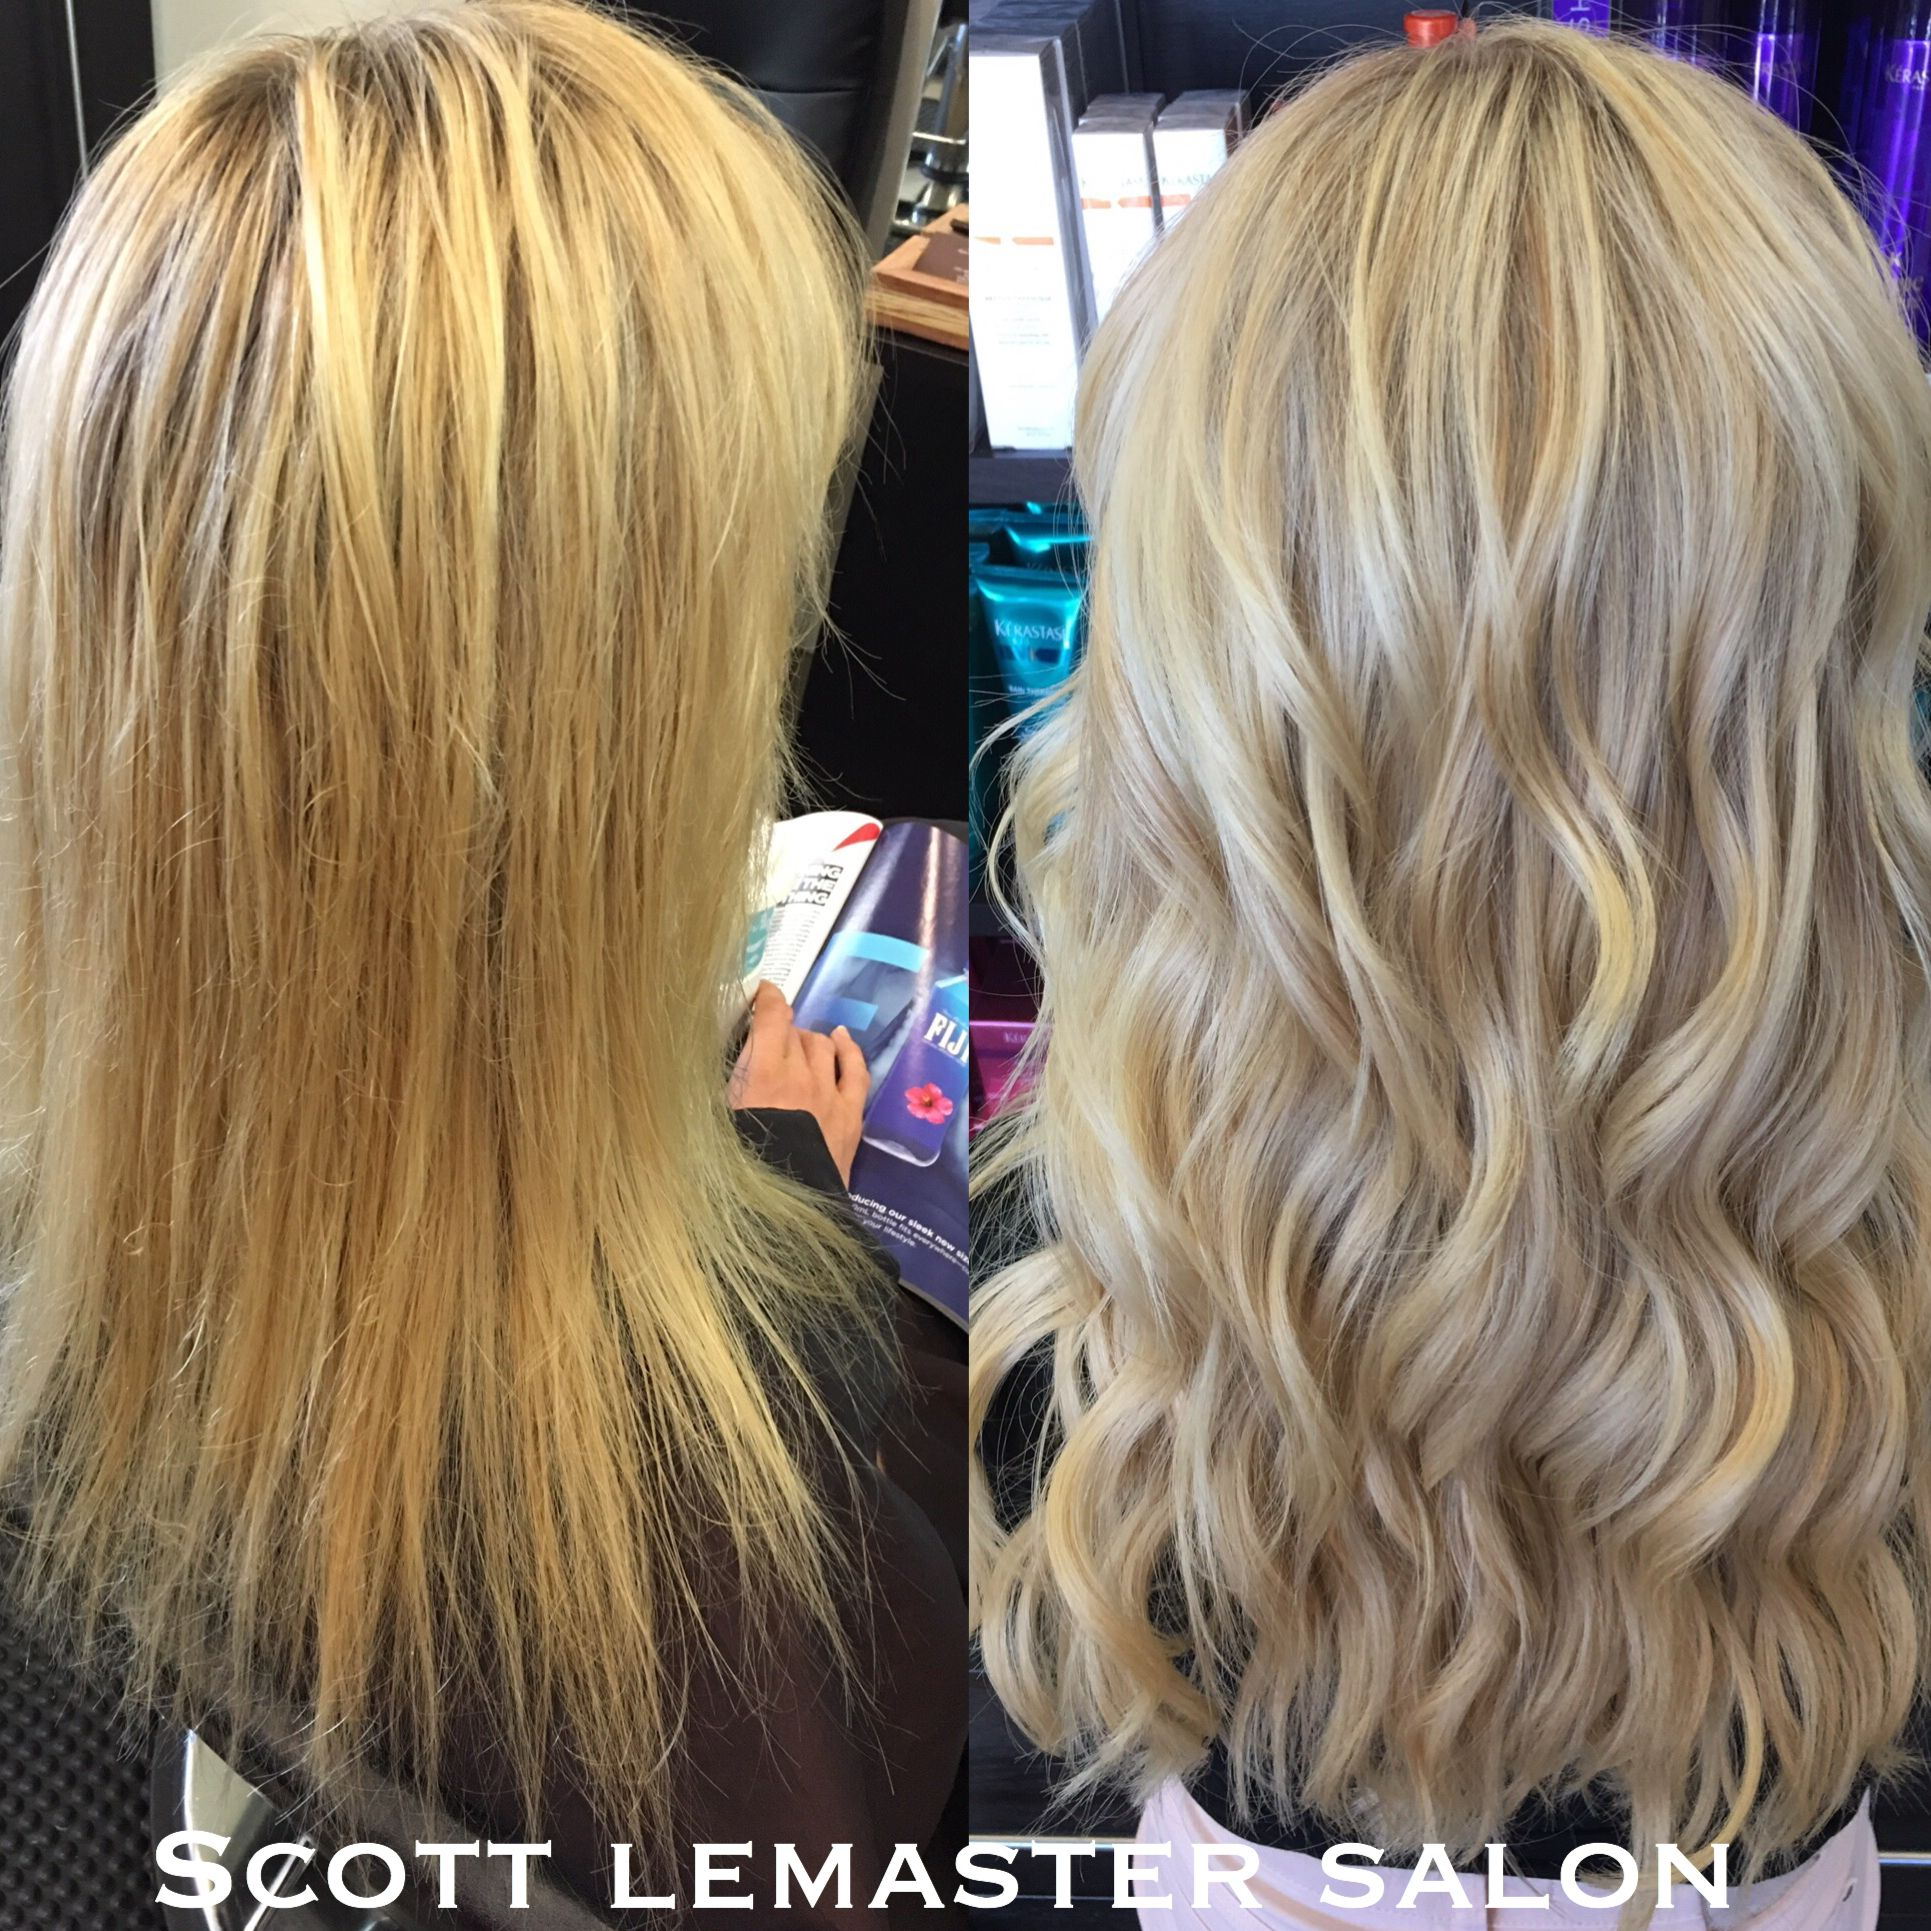 Before And After Cinderella Hair Extensions This Cut Color And